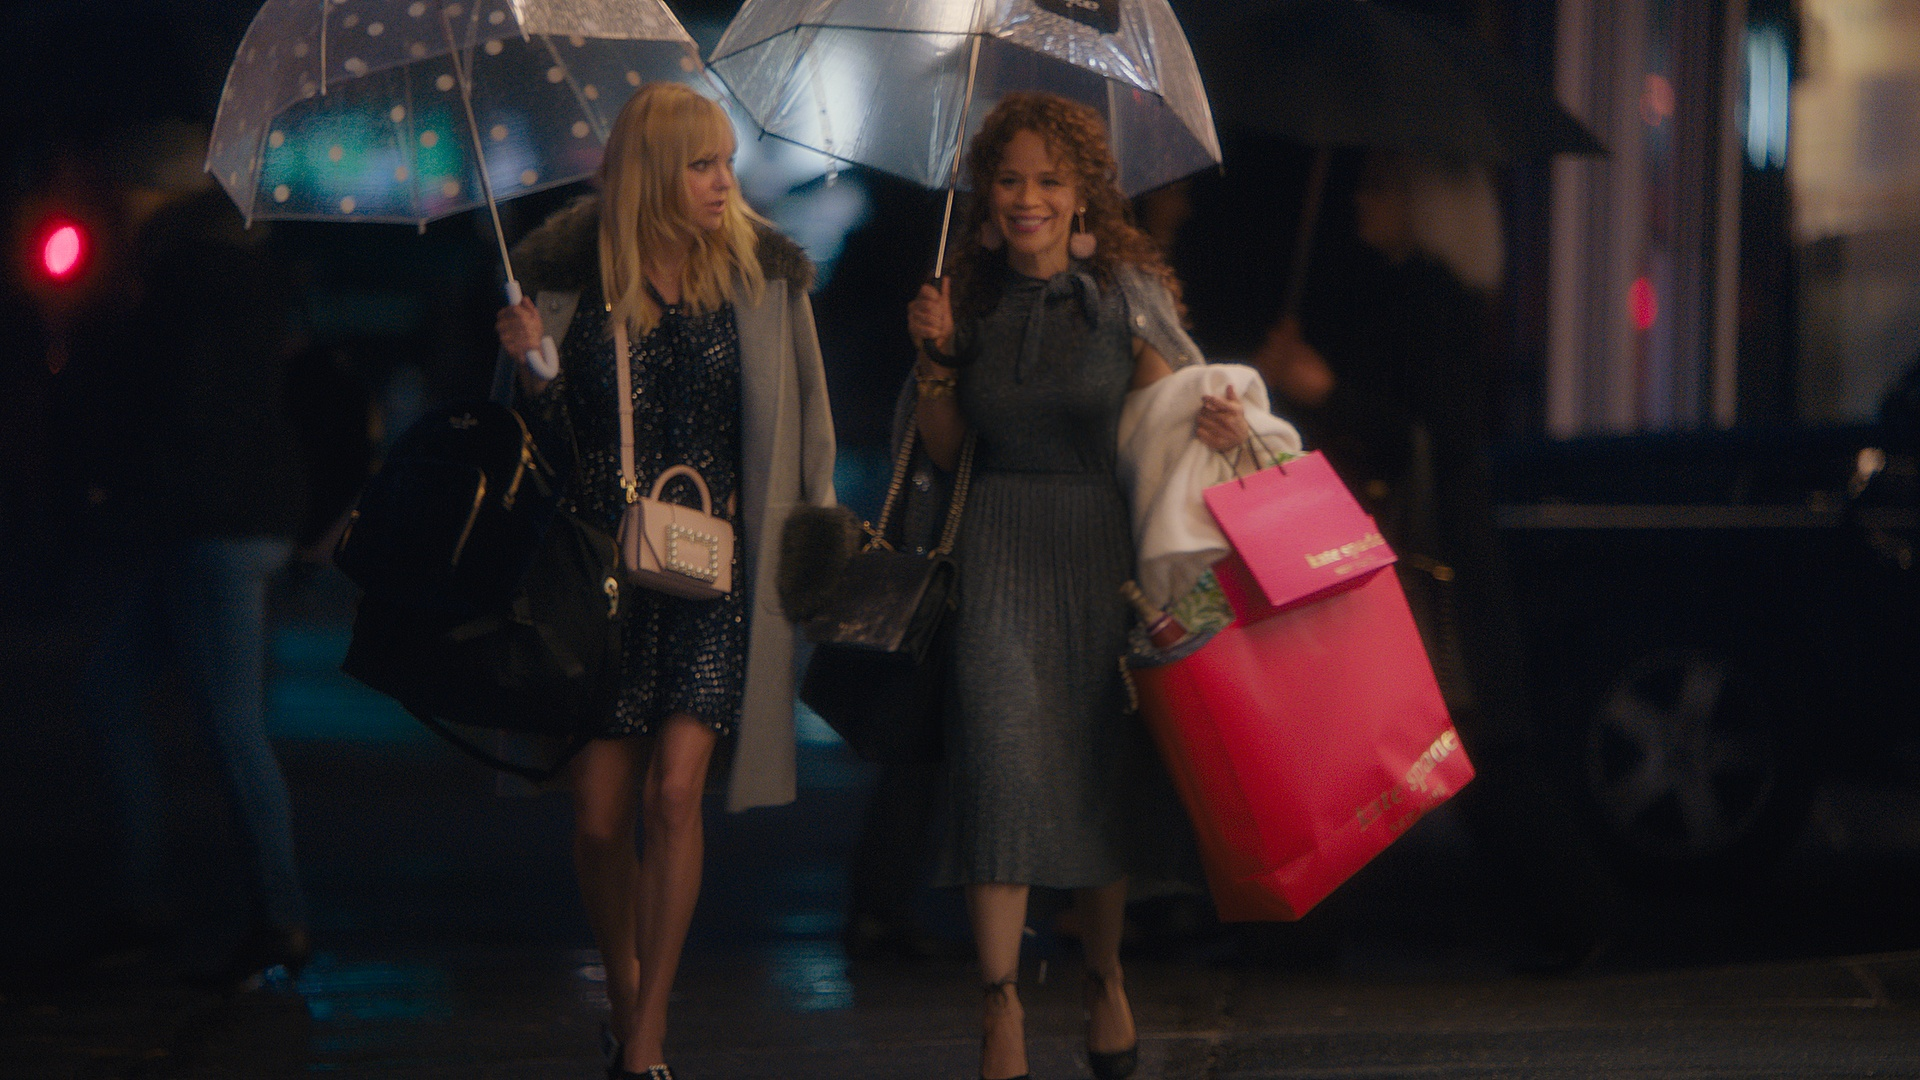 Thumbnail for kate spade new york: #missadventure season 3, episode 2 -